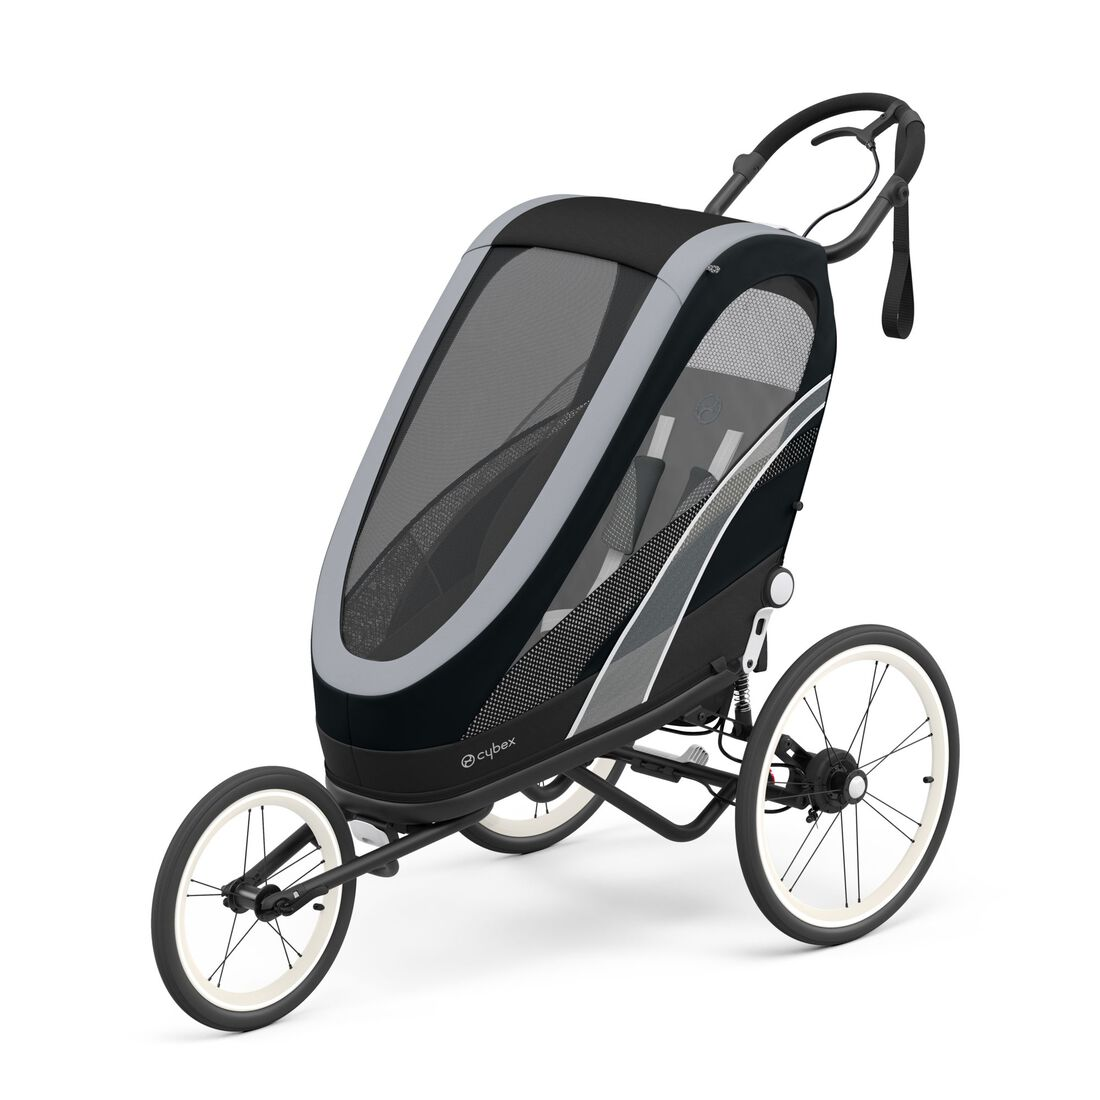 CYBEX Zeno One Box - All Black in All Black large image number 2